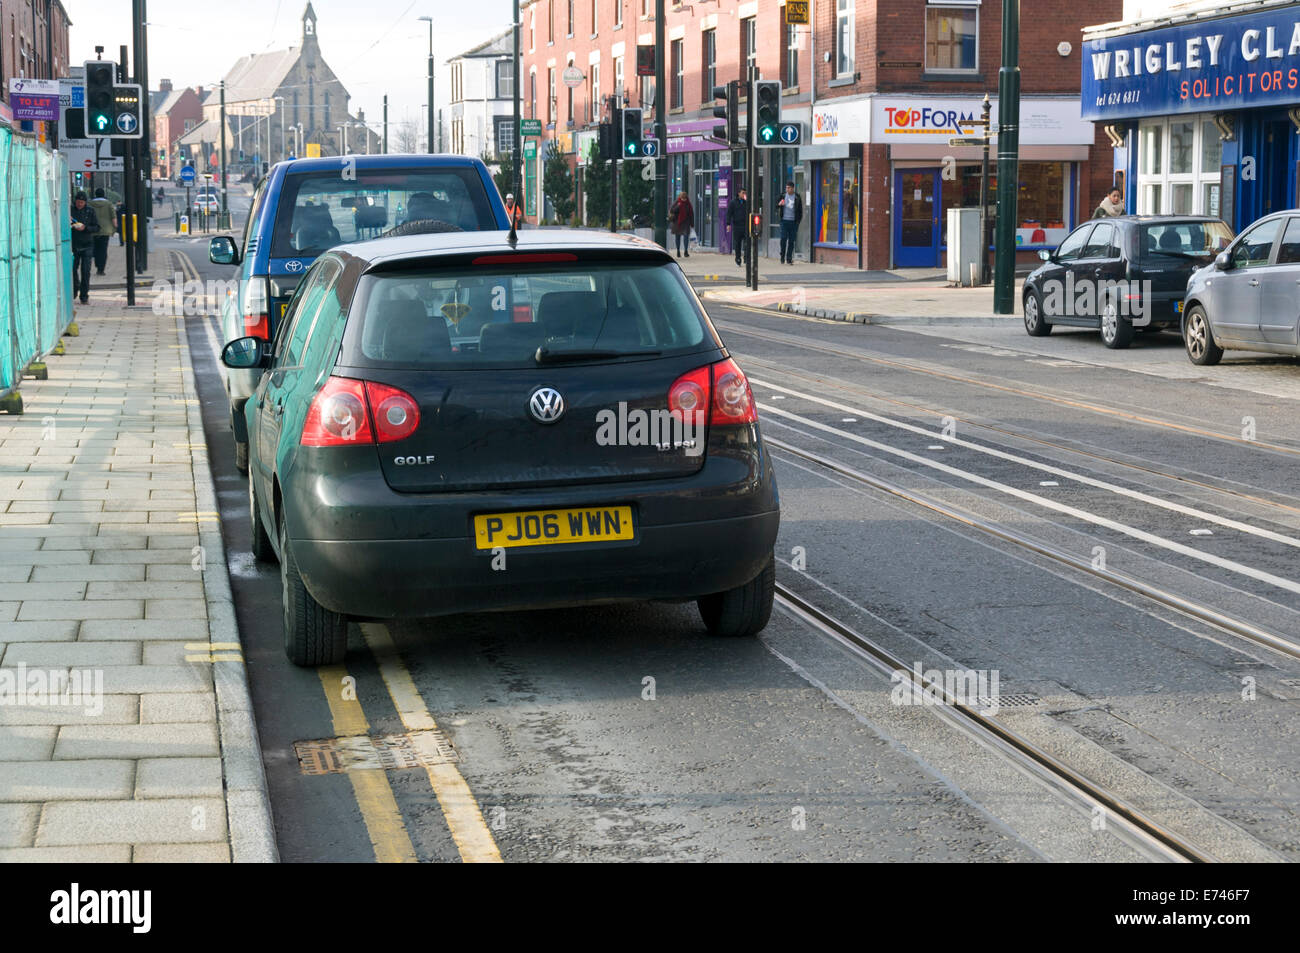 Two vehicles parked illegally and blocking the tram track, Union Street, Oldham, Greater Manchester, England, UK. - Stock Image